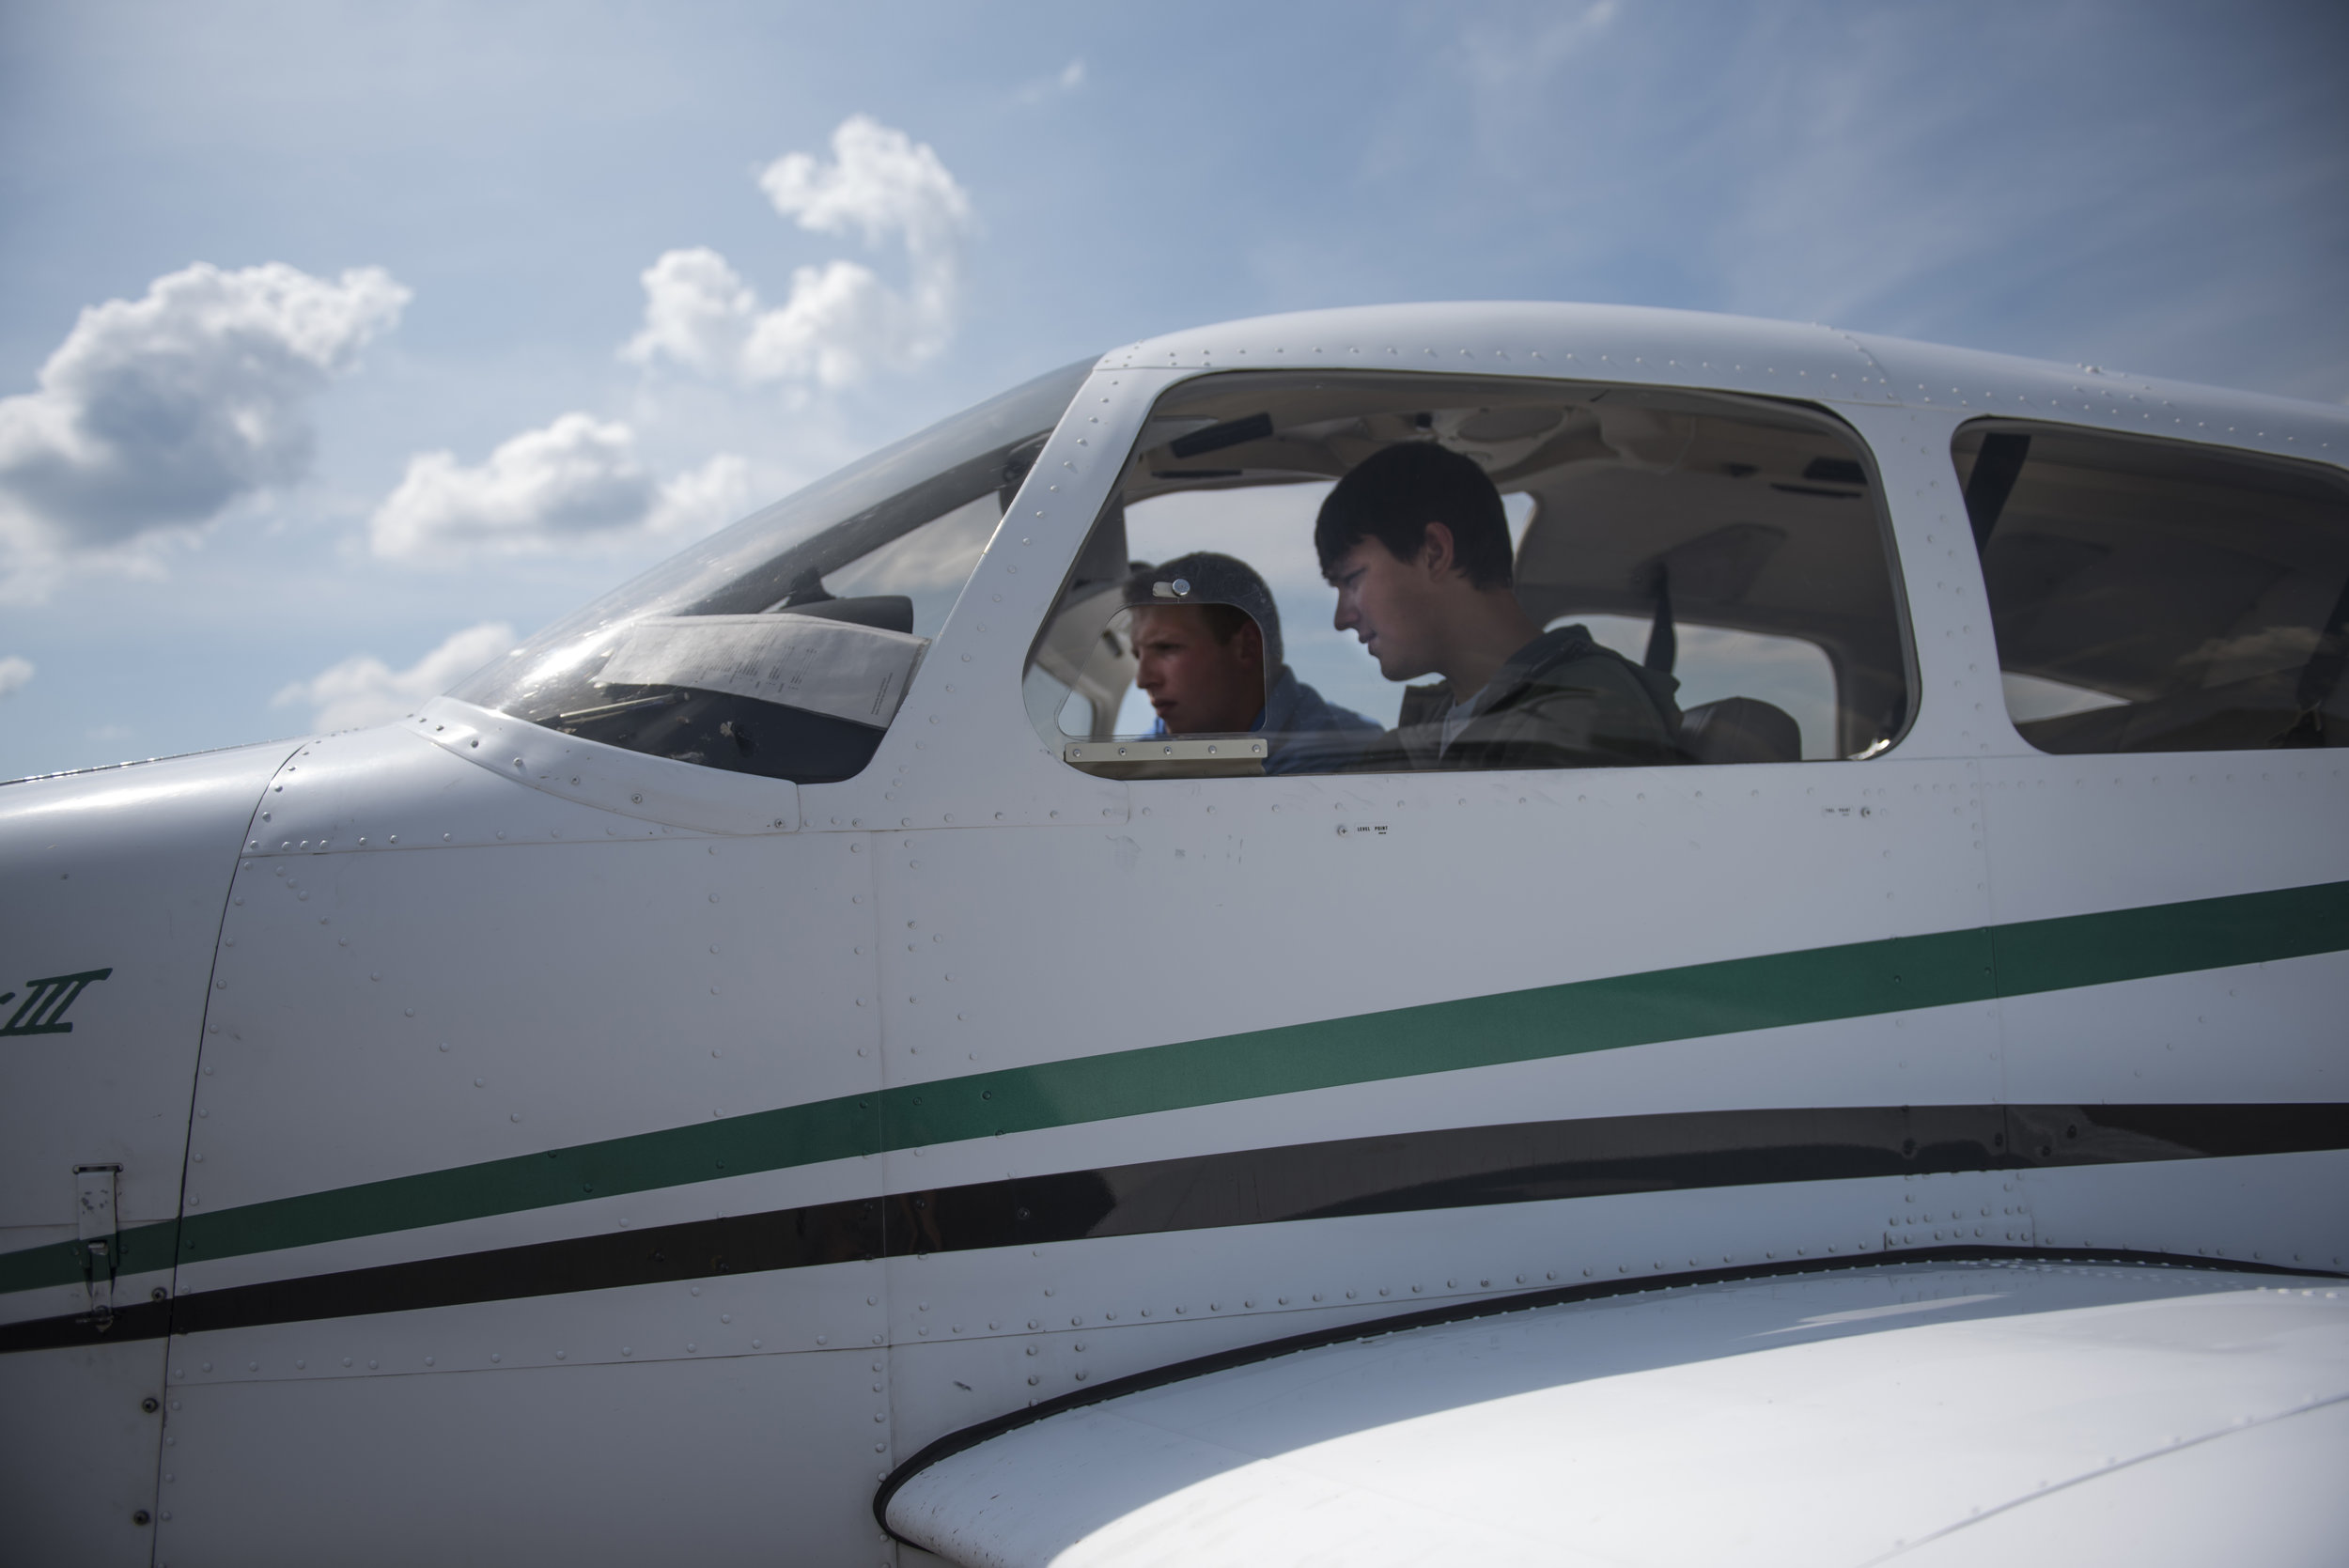 Flight instructor Michael Popo (left) gives Ohio University junior aviation major Henry Baxter-Potter (right) a lesson in one of Ohio University's small planes on Sept. 18, 2017.